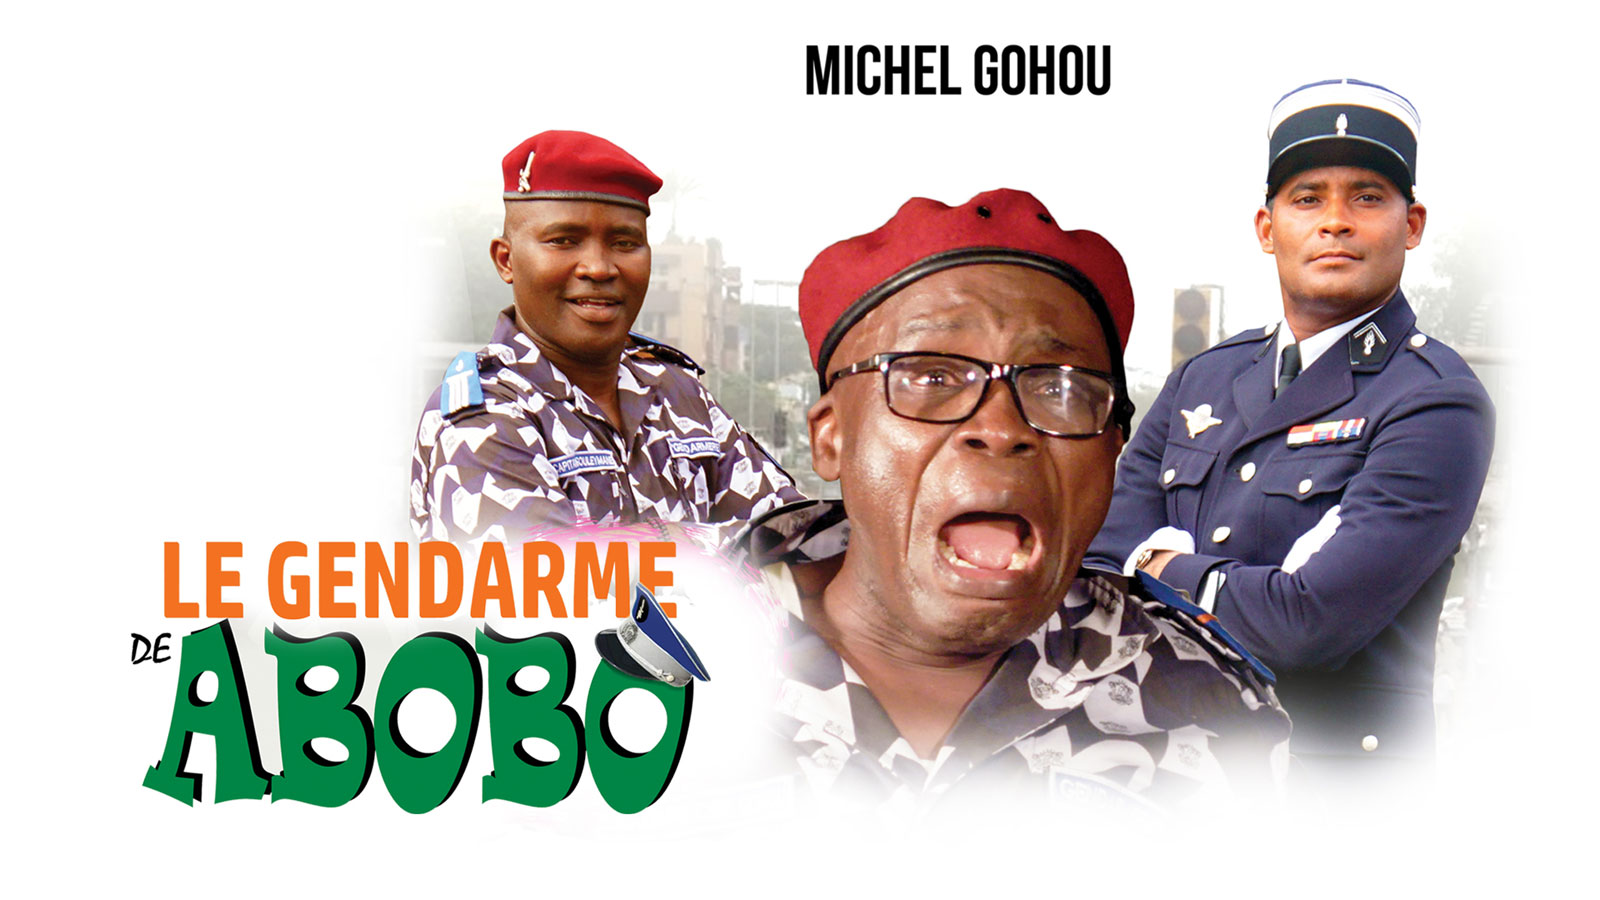 Le Gendarme de Abobo streaming